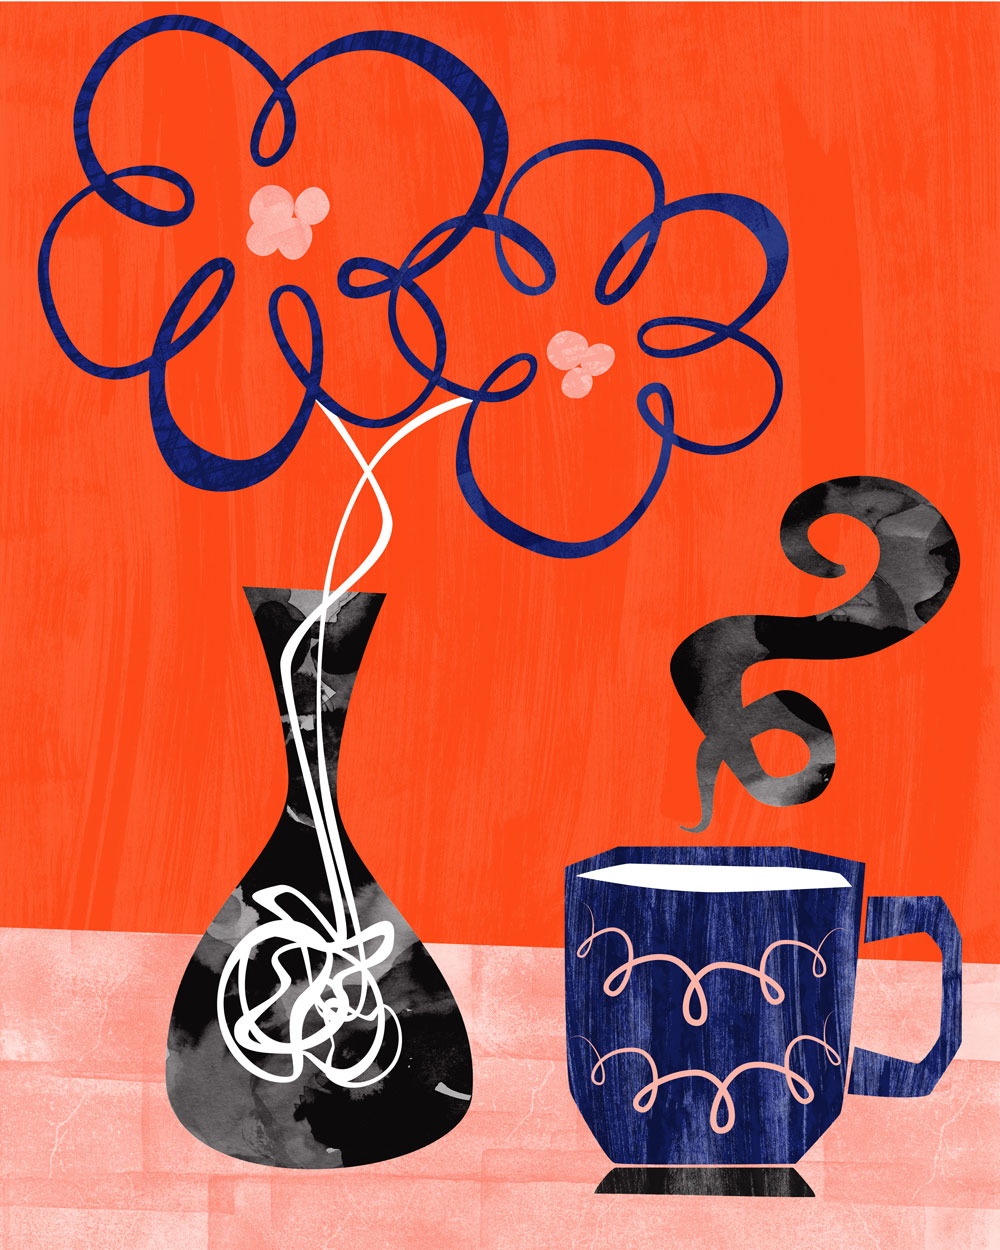 Flowers and Coffee illustration by Bryna Shields